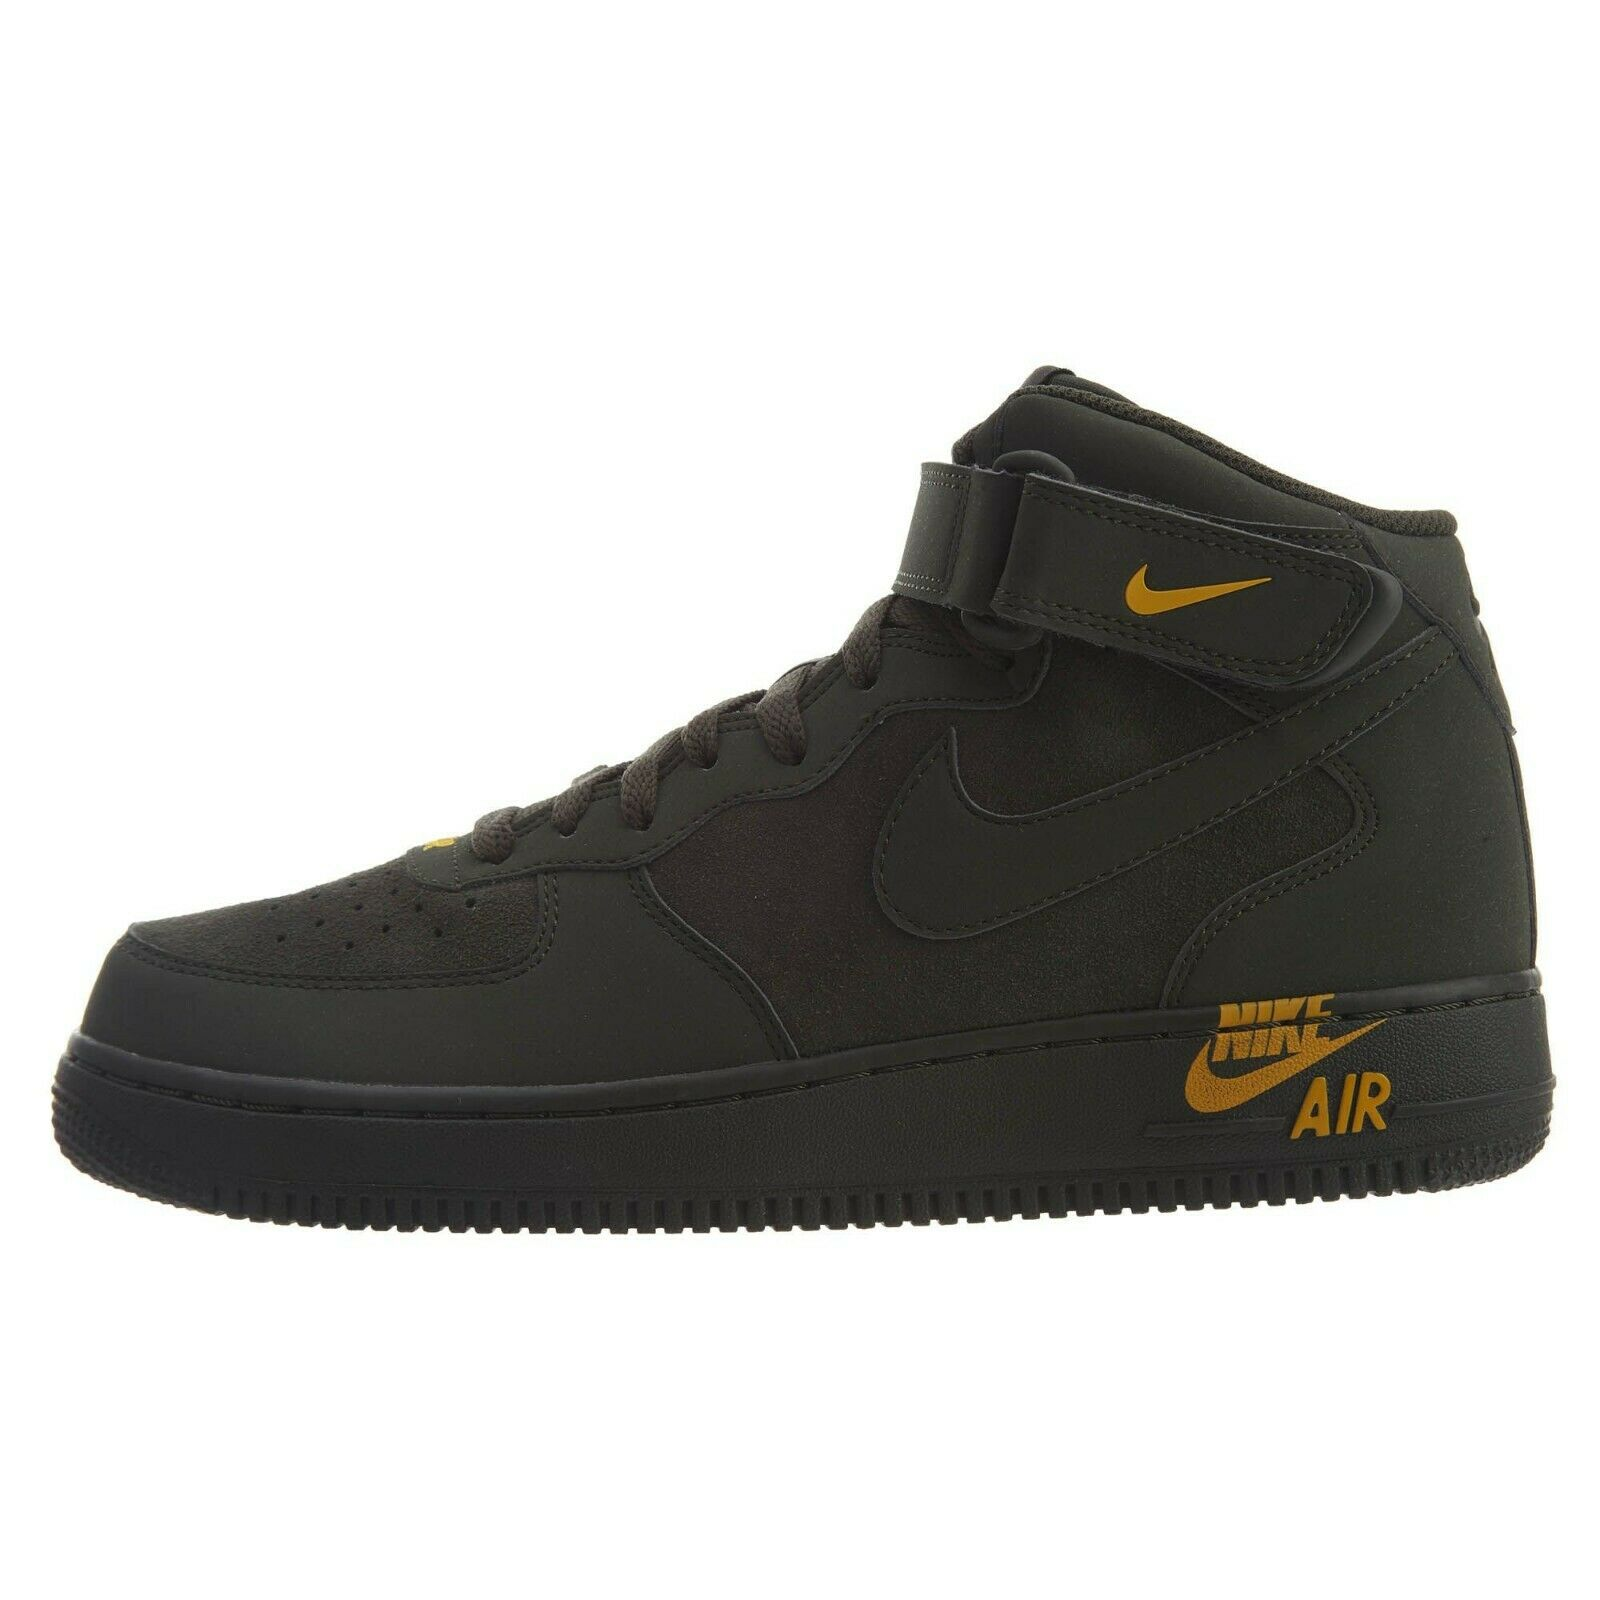 Mens Nike Air Force 1 '07 Mid Lifestyle Sequoia Yellow 315123-304 Size 10